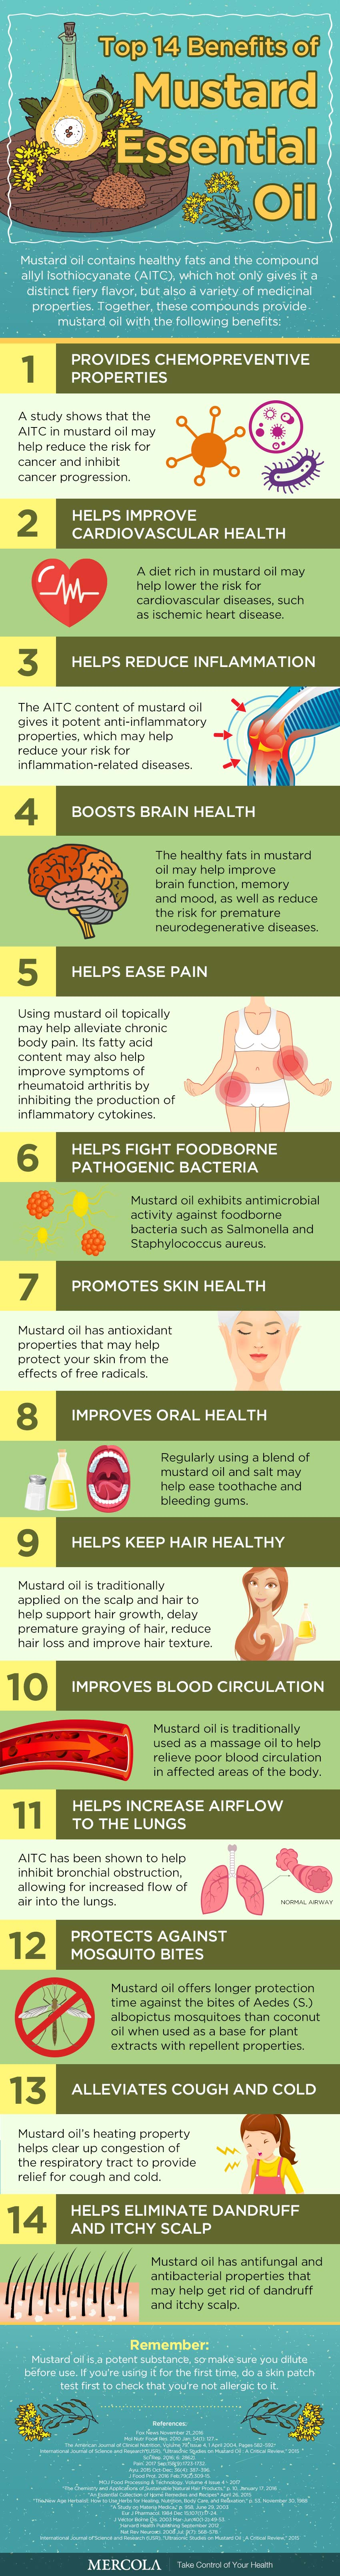 Top 14 Benefits of Mustard Essential Oil